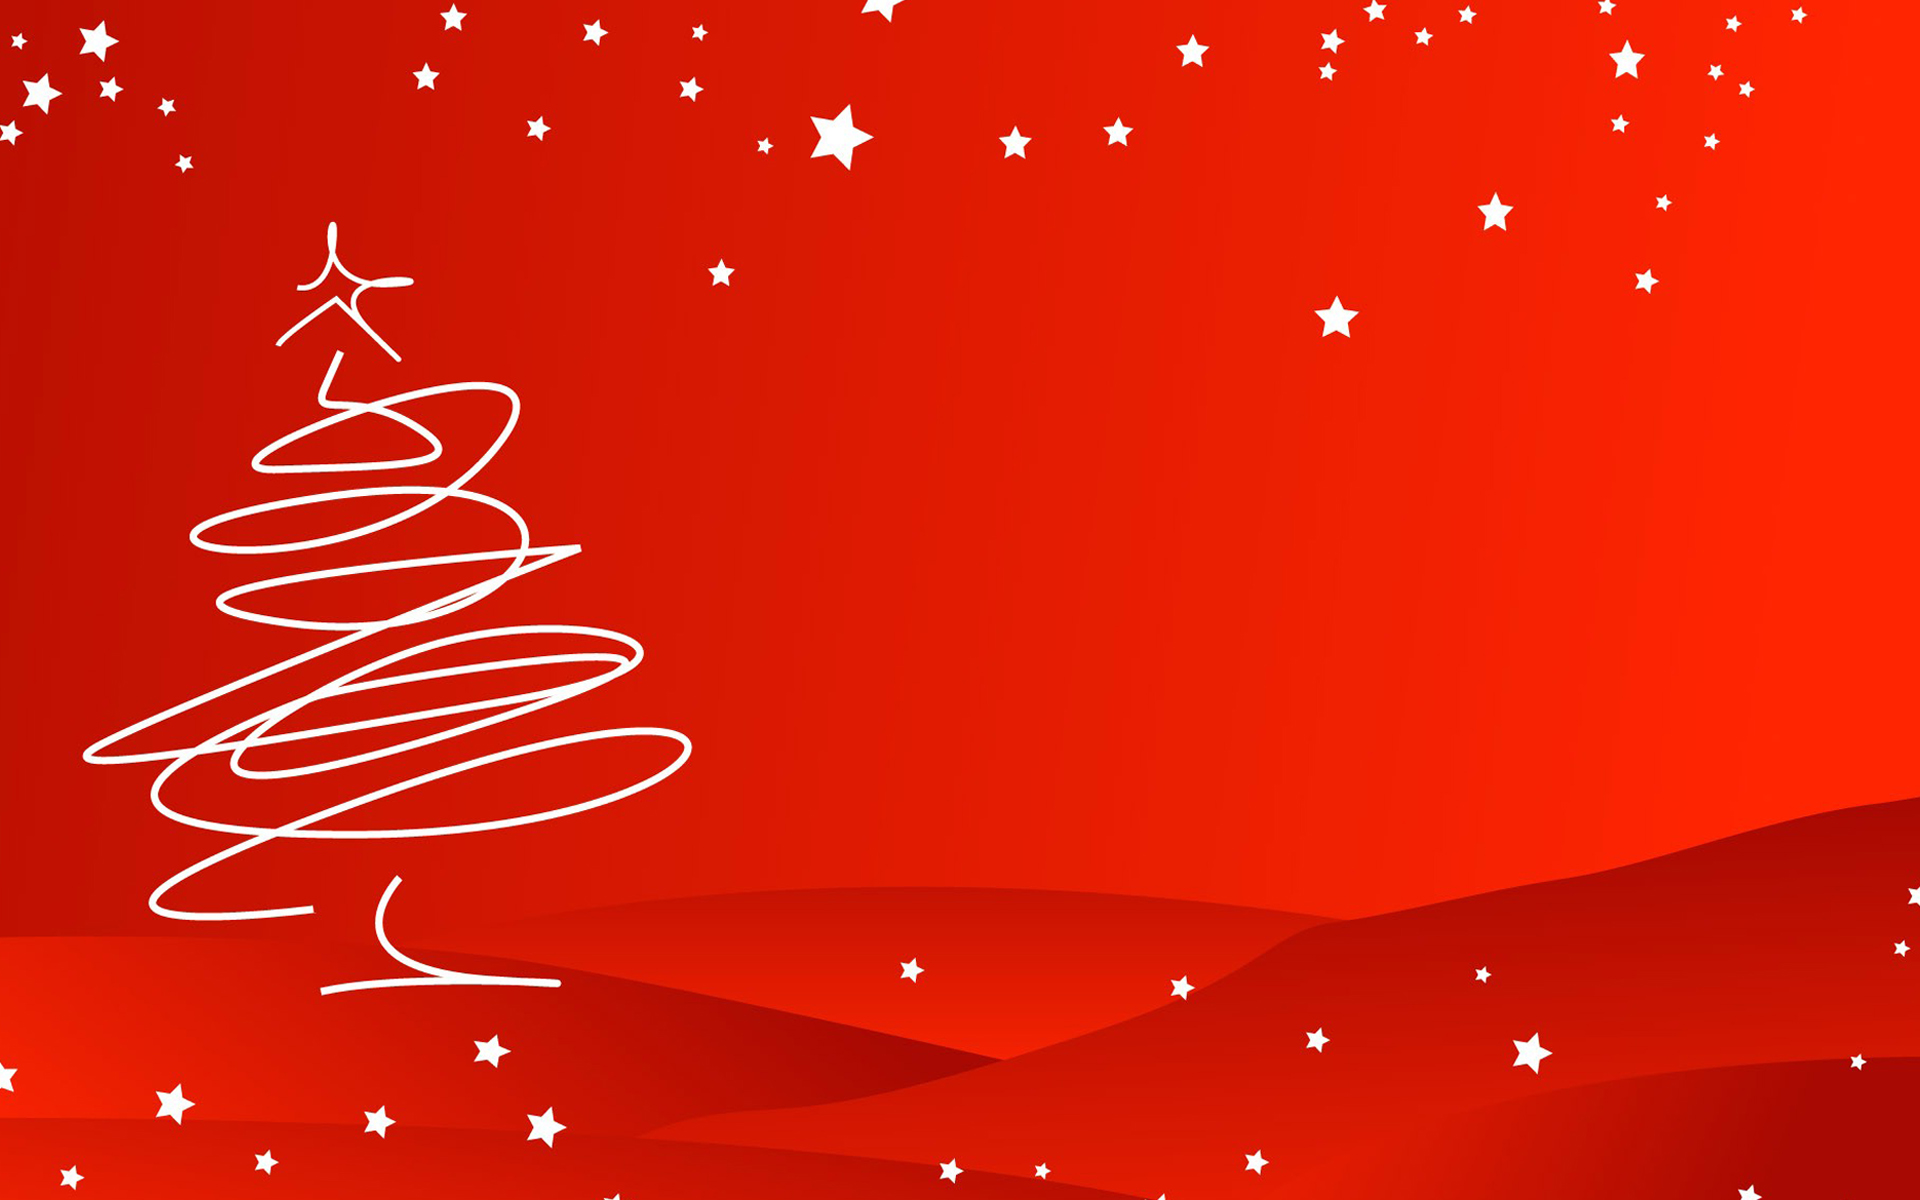 Cute Animated Wallpapers For Cell Phones Christmas Backgrounds For Christmas Hd Wallpapers Pulse